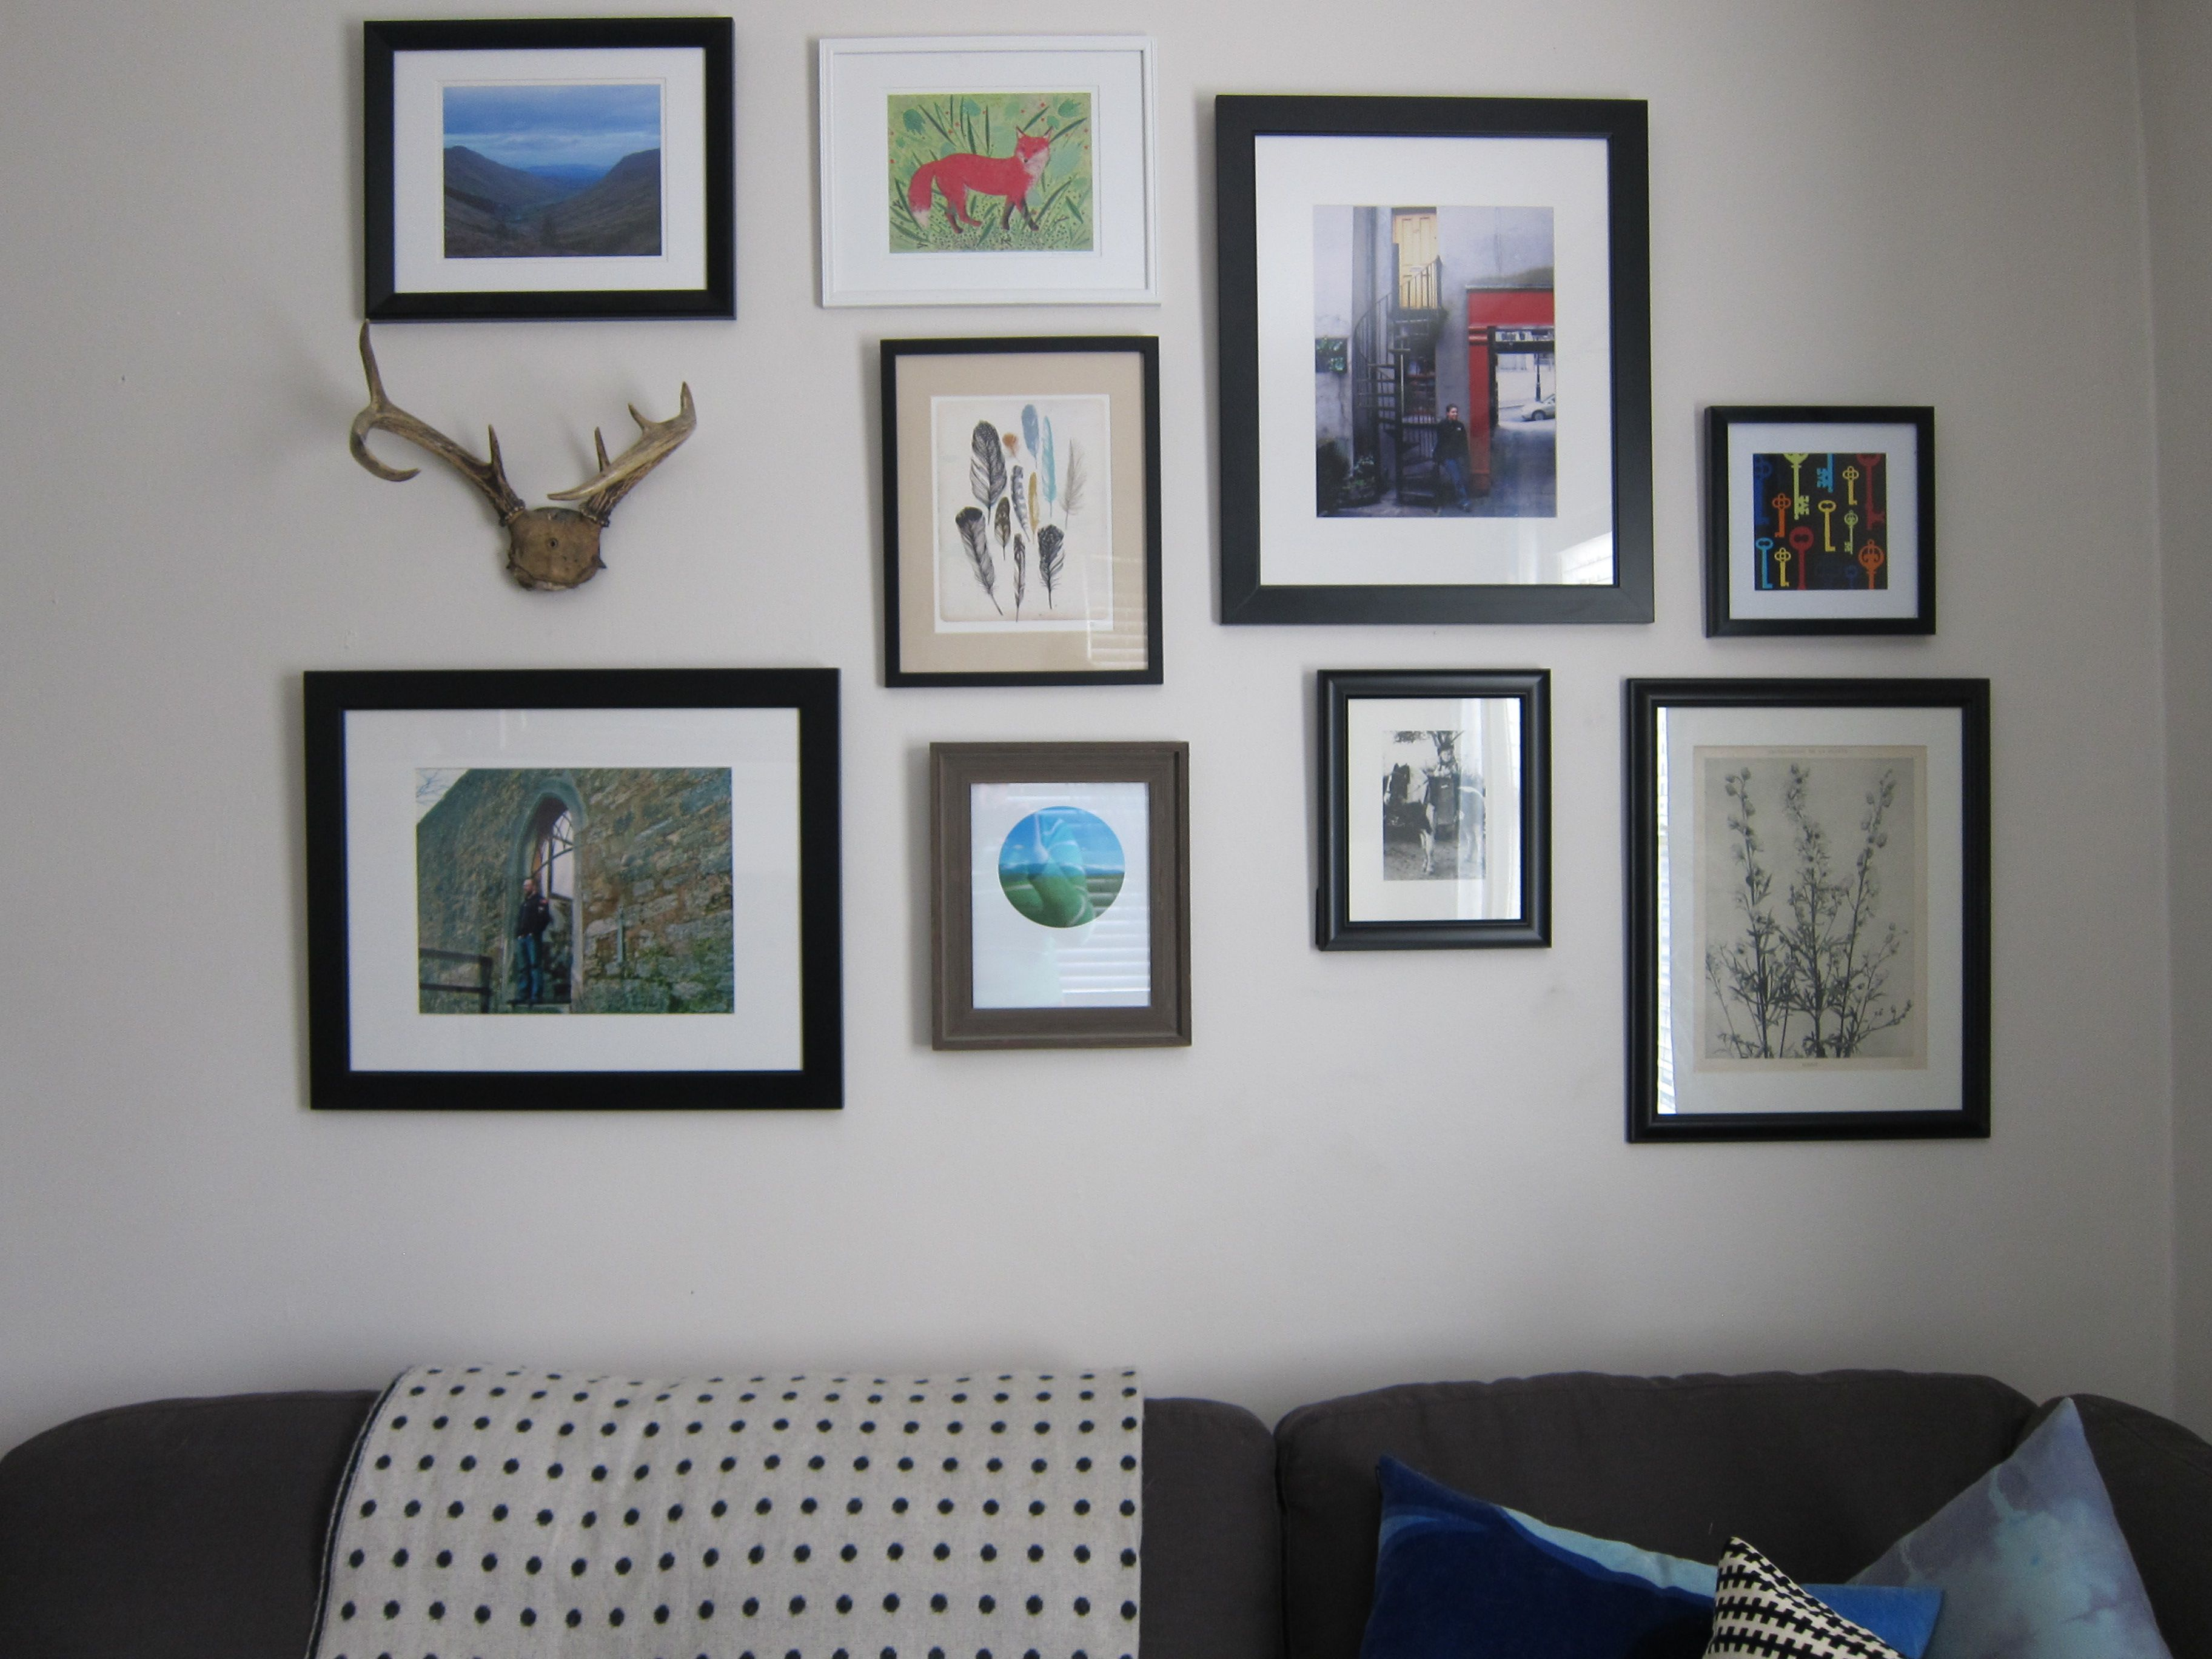 17 best images about wall frames on pinterest diy living room cool ideas and wall decor